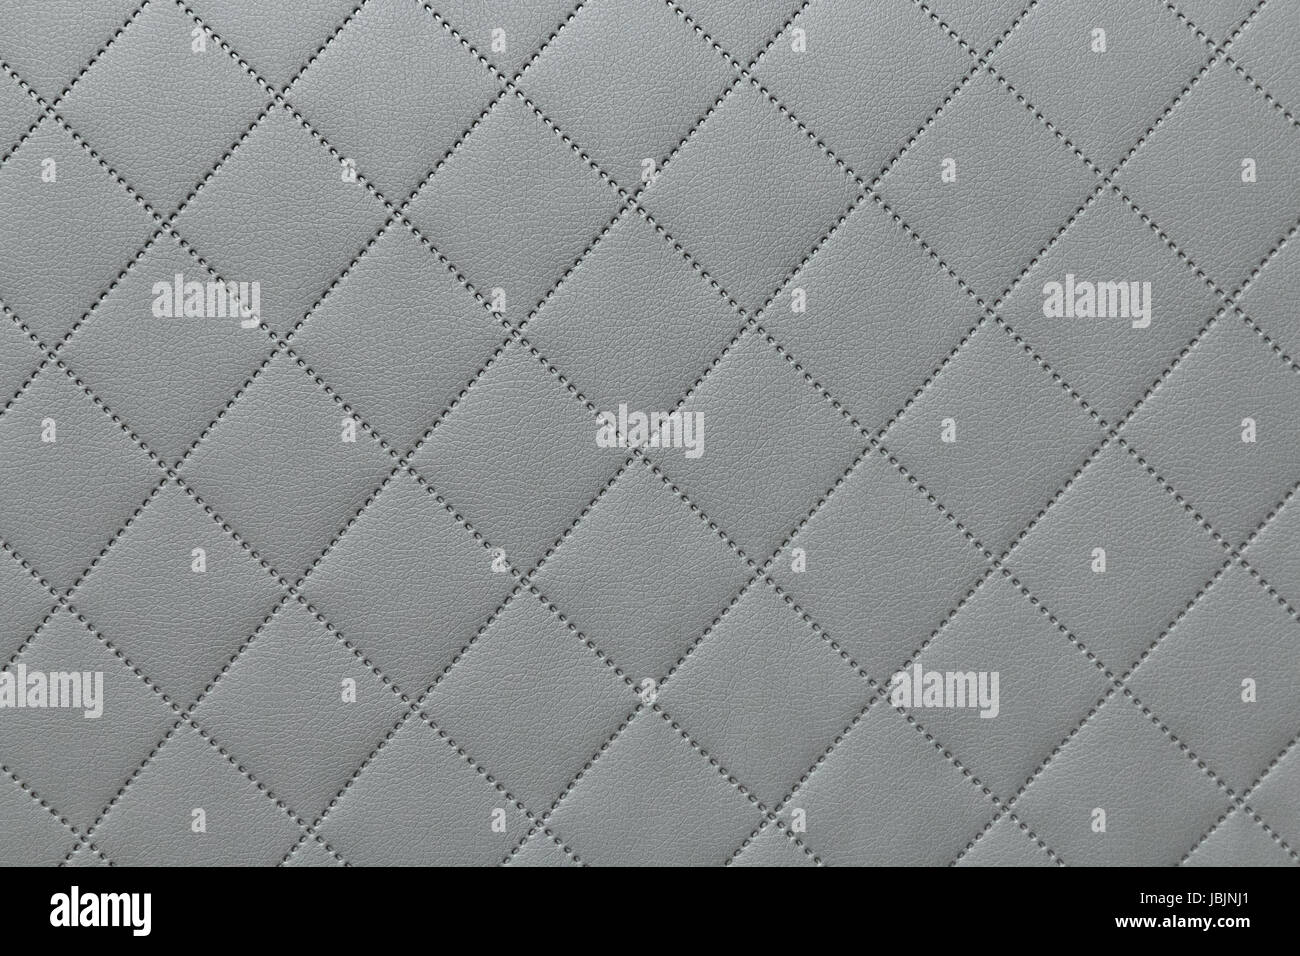 detail of sewn leather, gray leather upholstery background pattern - Stock Image